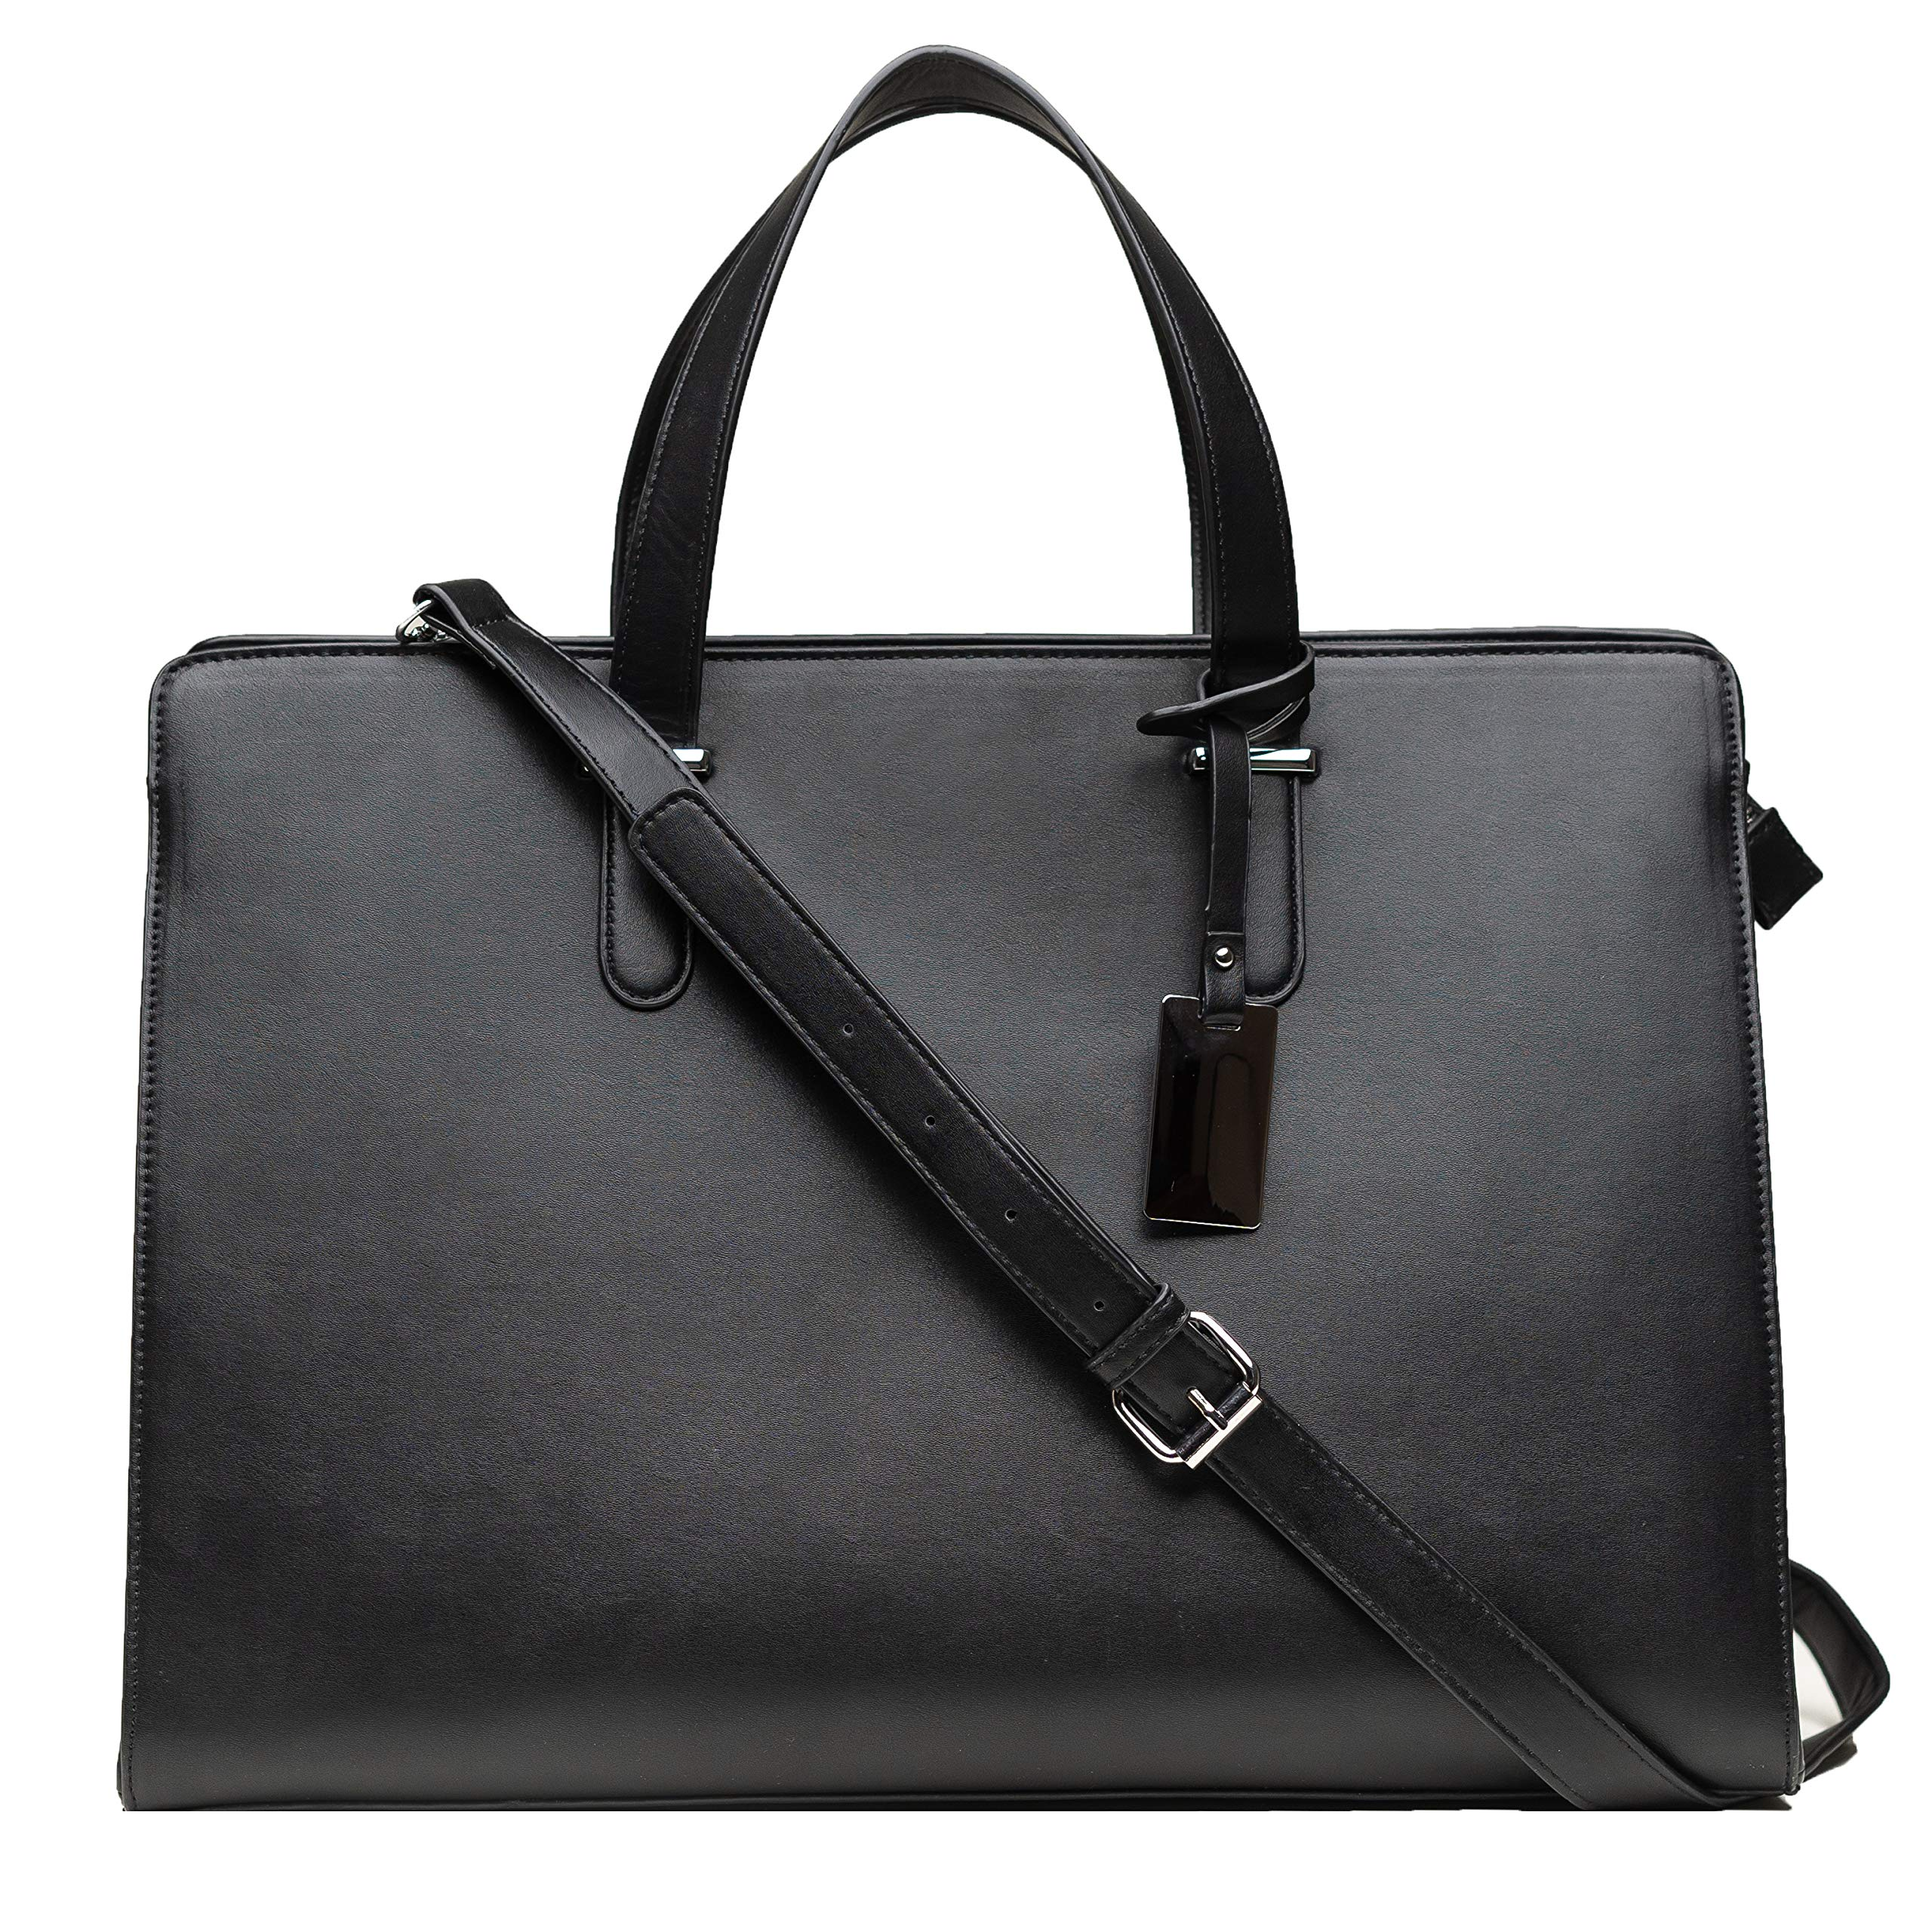 Computer Bag for Women - Ideal Laptop Tote Bag to Keep Your Business Documents, Laptop & Notebook Safe, Unique & Practical Laptop Accessories (Black) by BLONS California (Image #1)